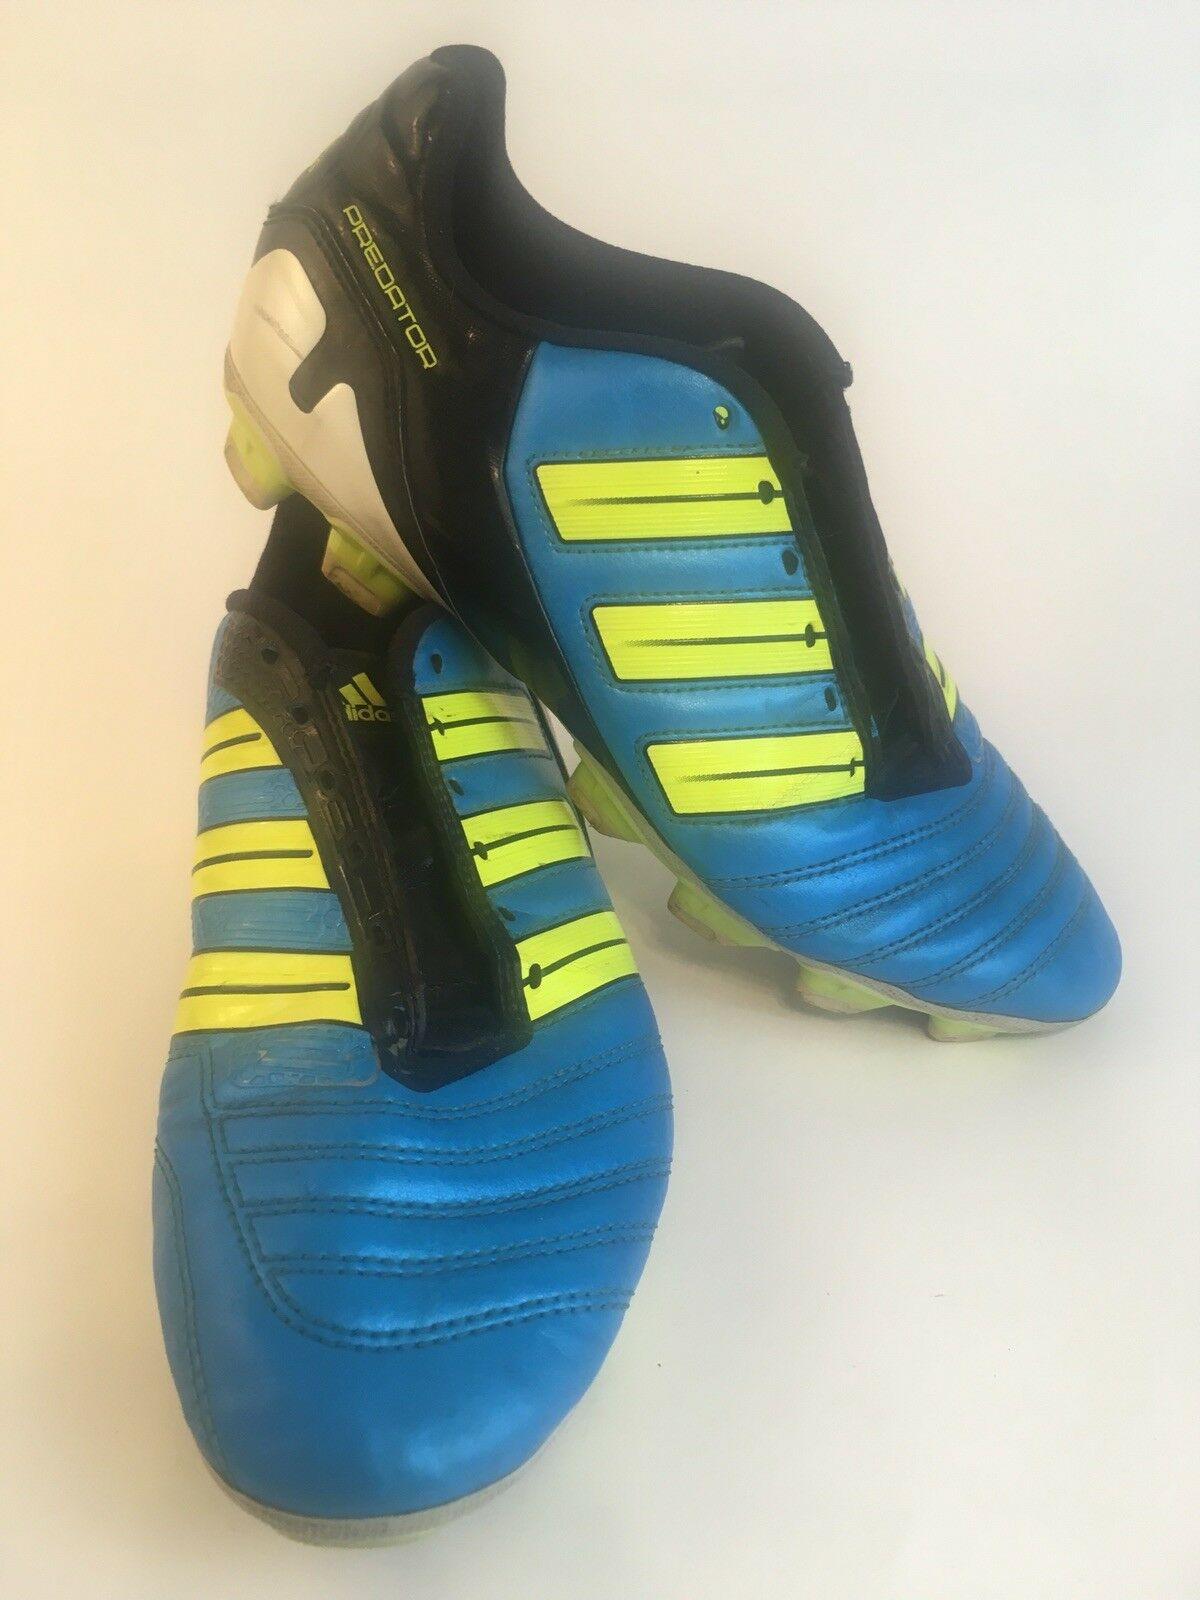 0ec06ff78a3b Adidas 2011 AdiPower Predator Soccer Cleats Boots Top Leather FG Mens 8  Wmns 10